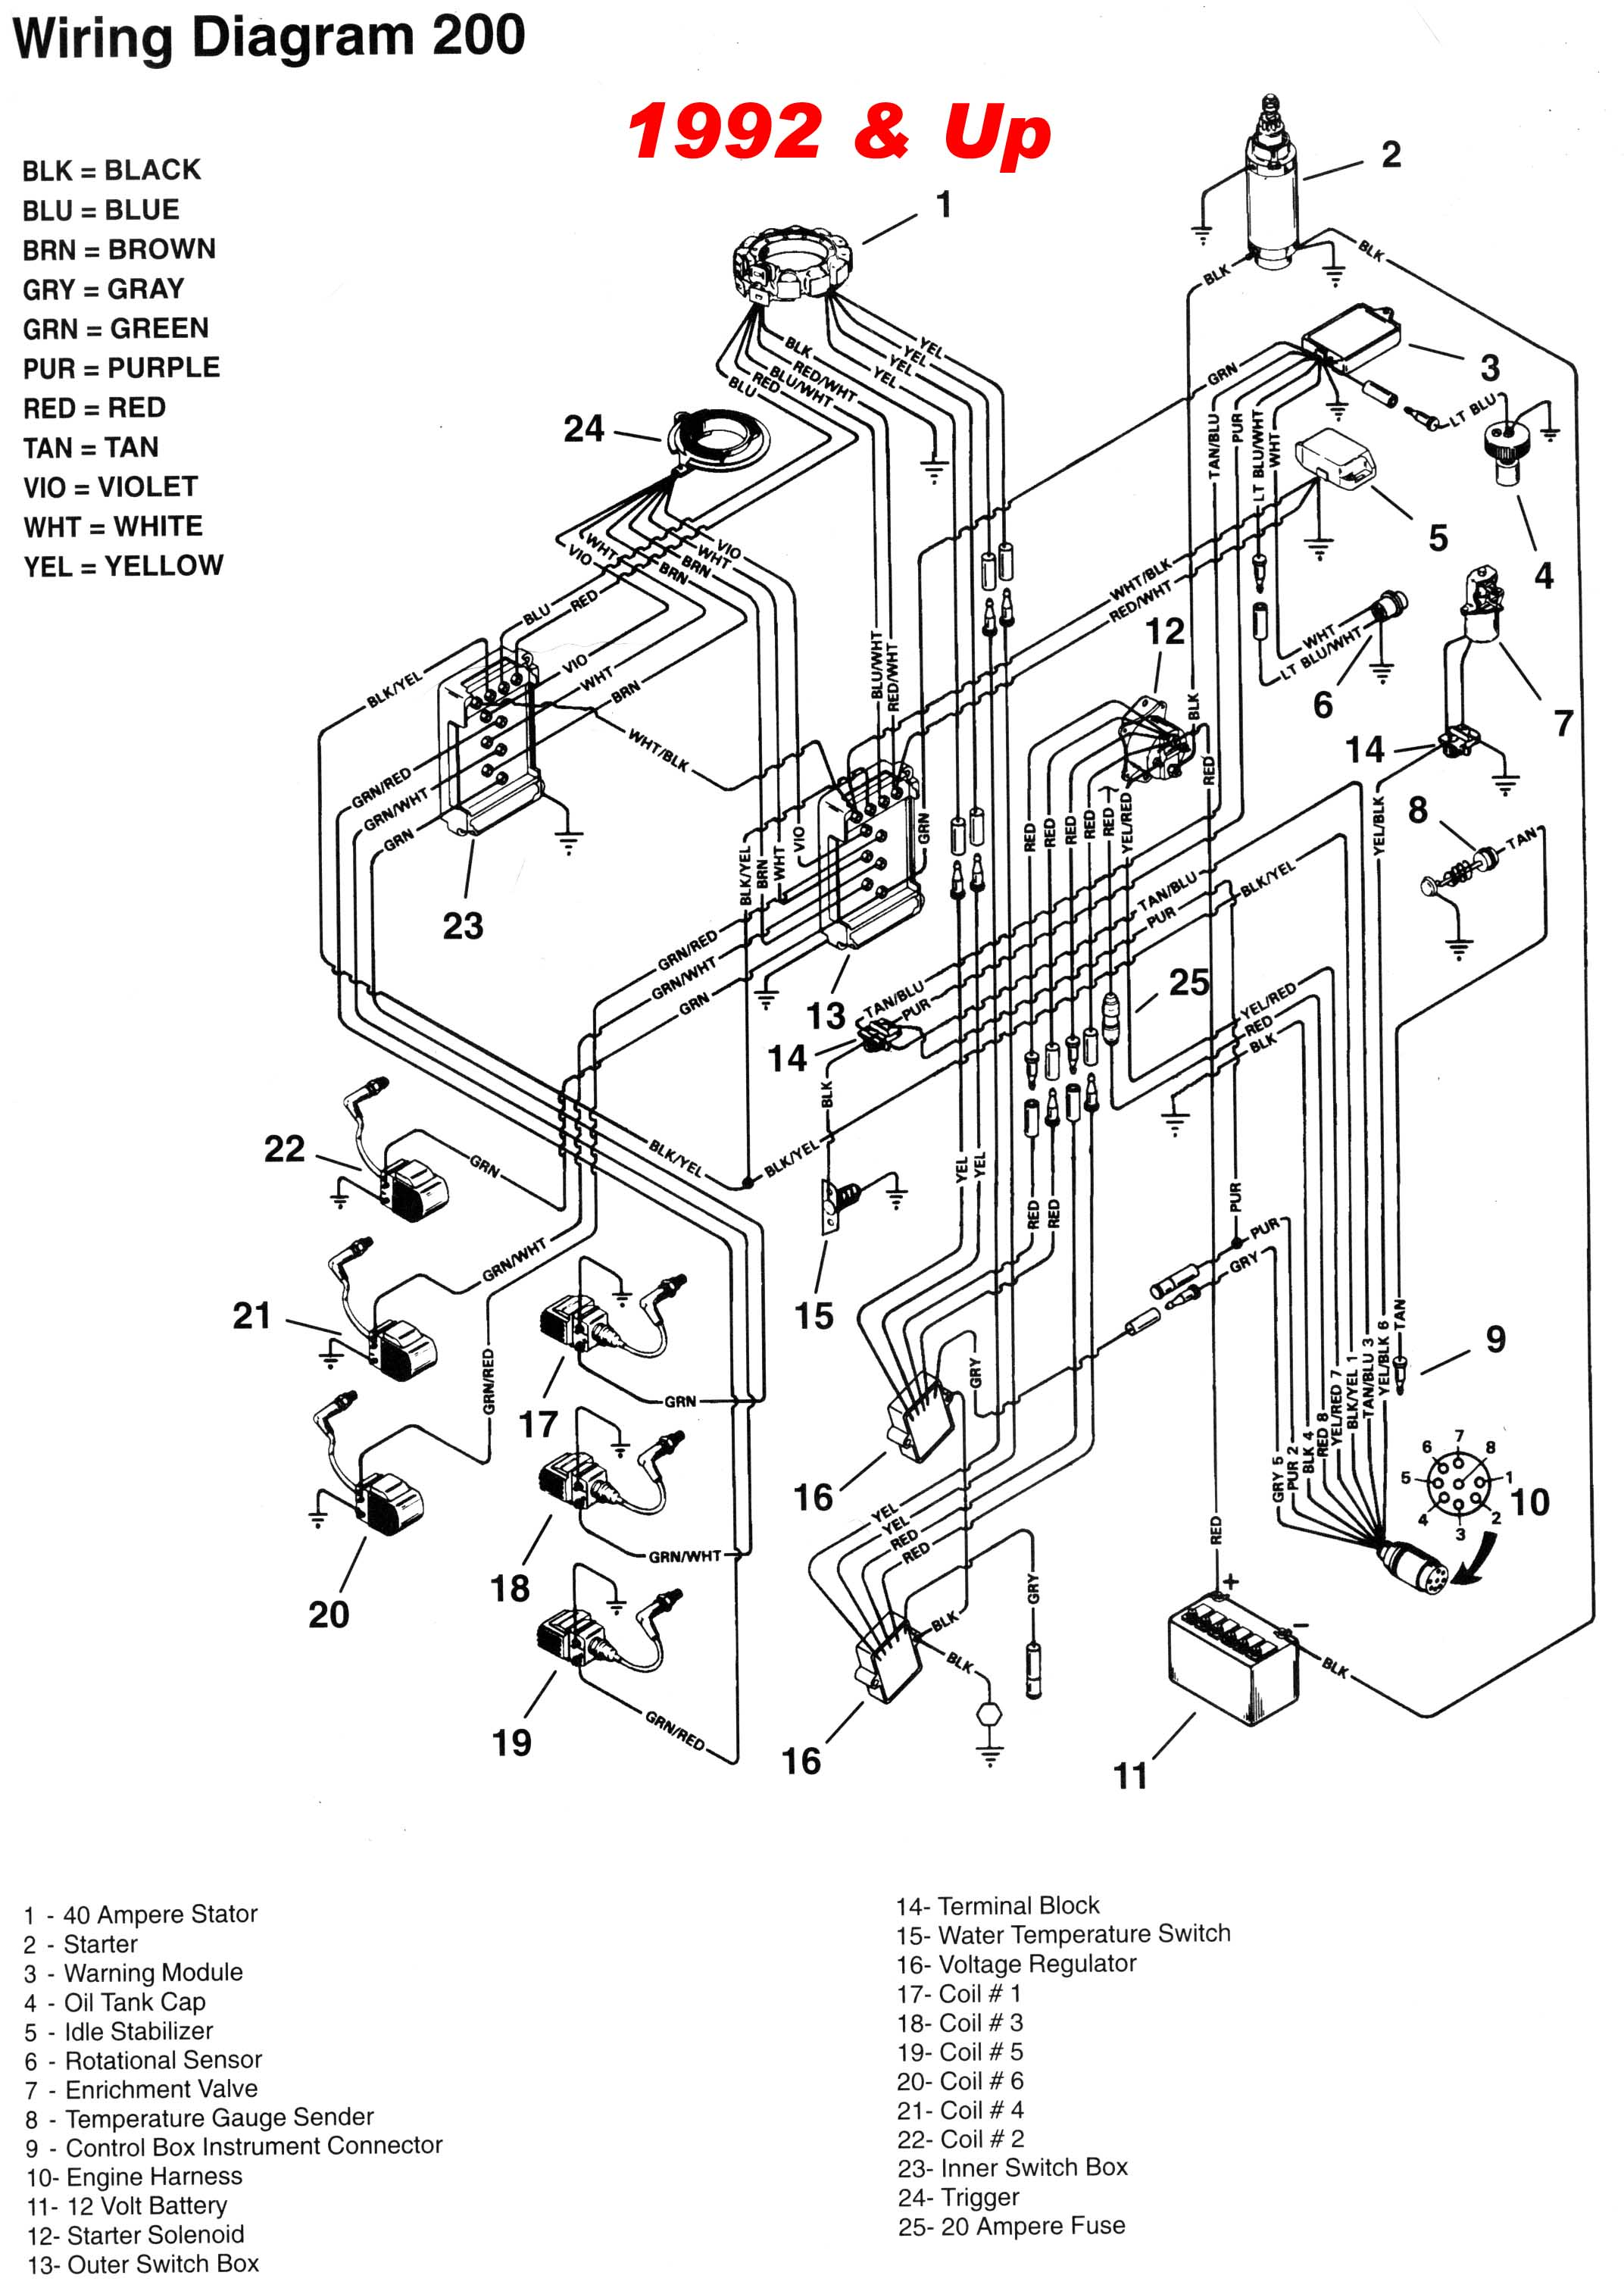 mercury_92up_200_wiring mercury outboard 2 5 and 3 0l v6 and gearcase faq mercury 14 pin wiring harness diagram at edmiracle.co